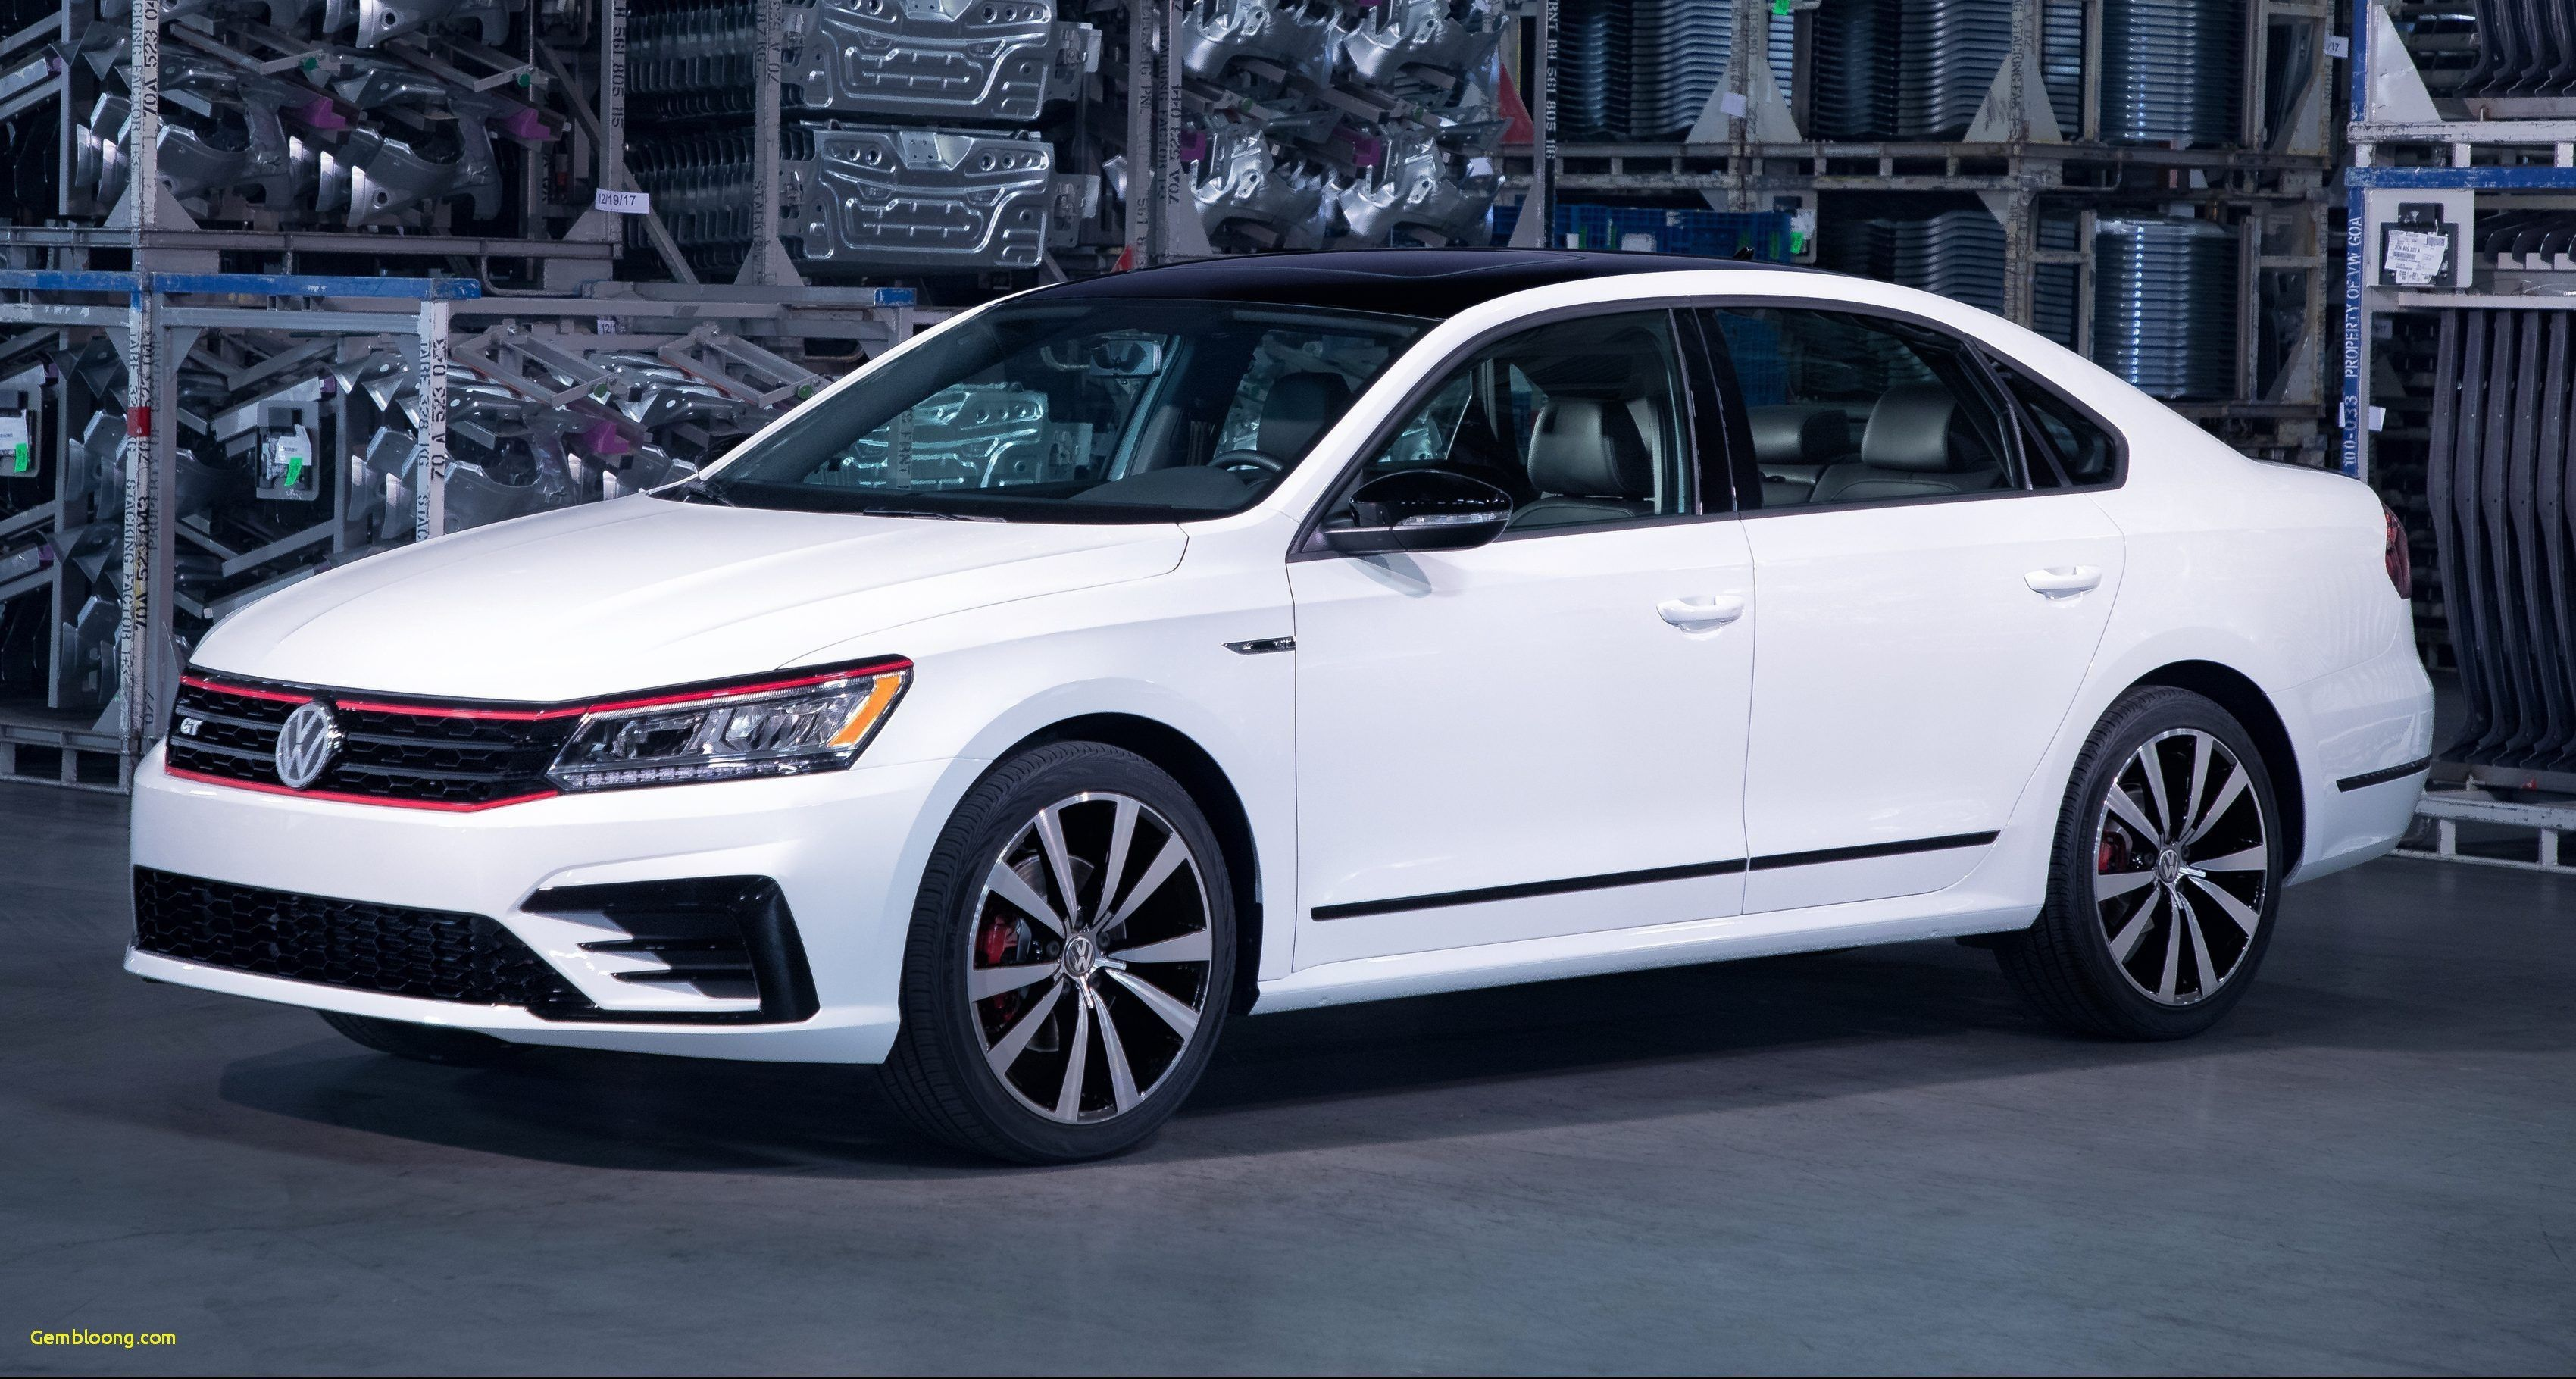 2020 Vw Jetta Tdi Overview